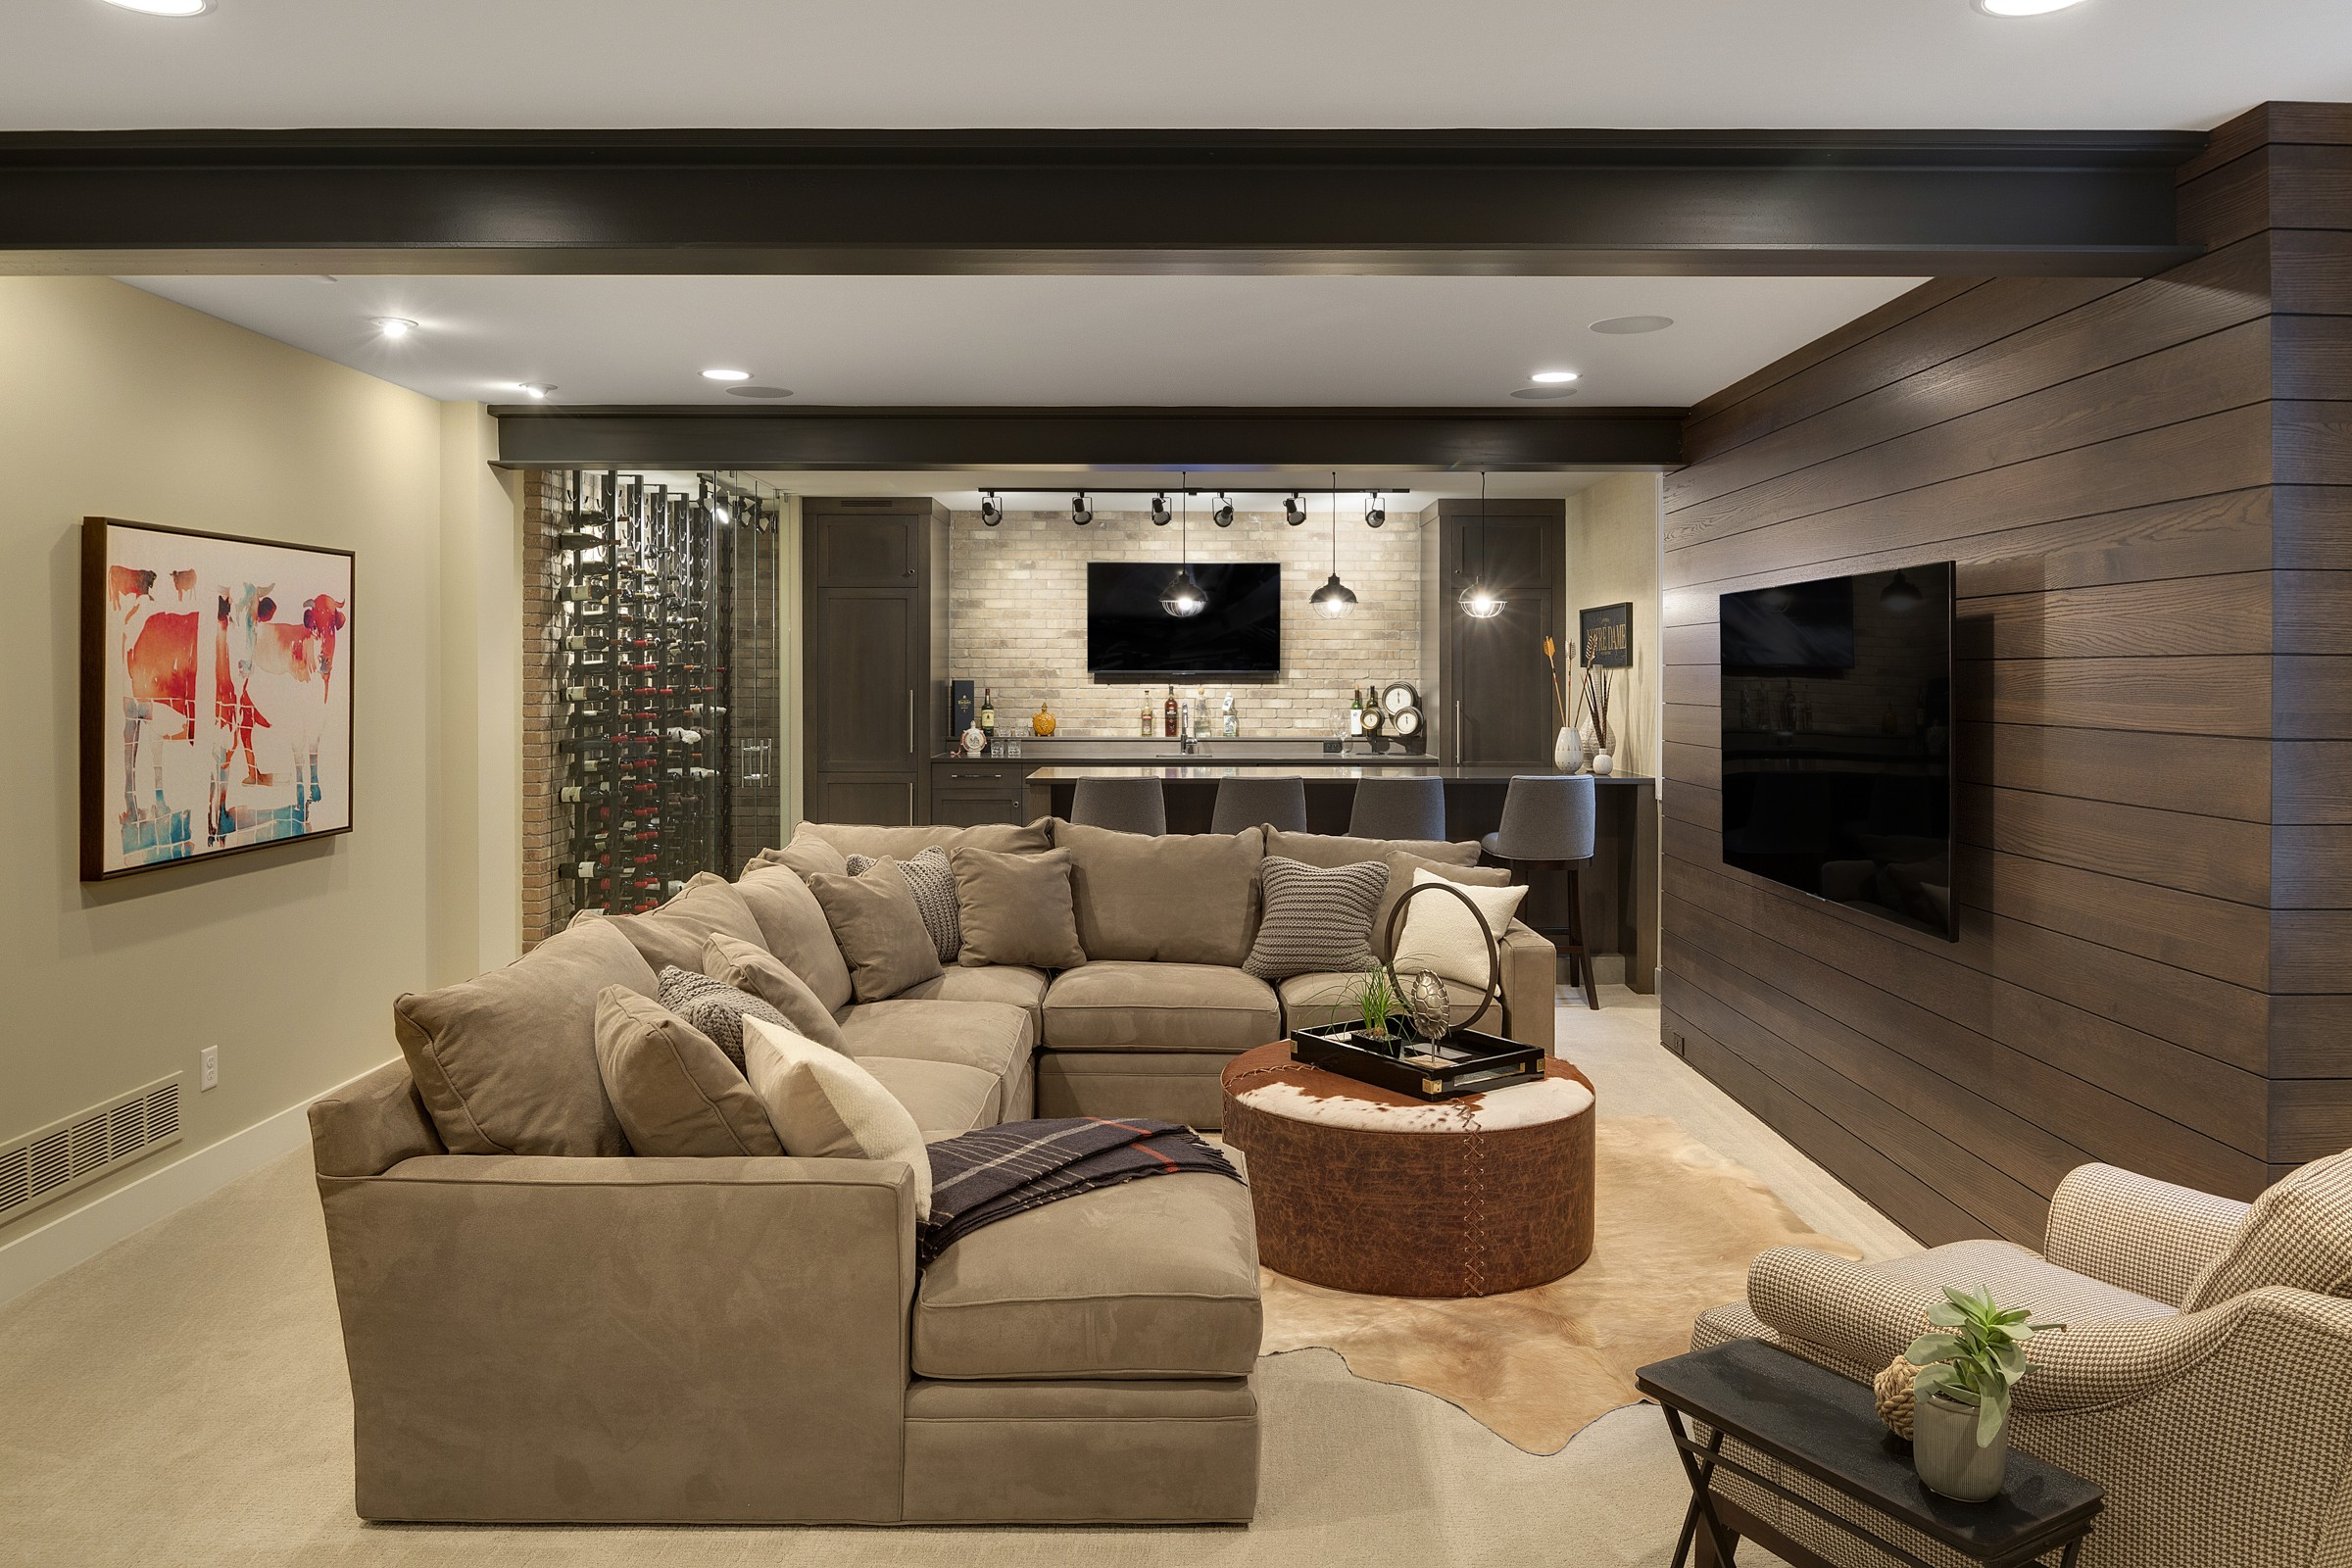 Home_Design_Edina_MN_35.jpg